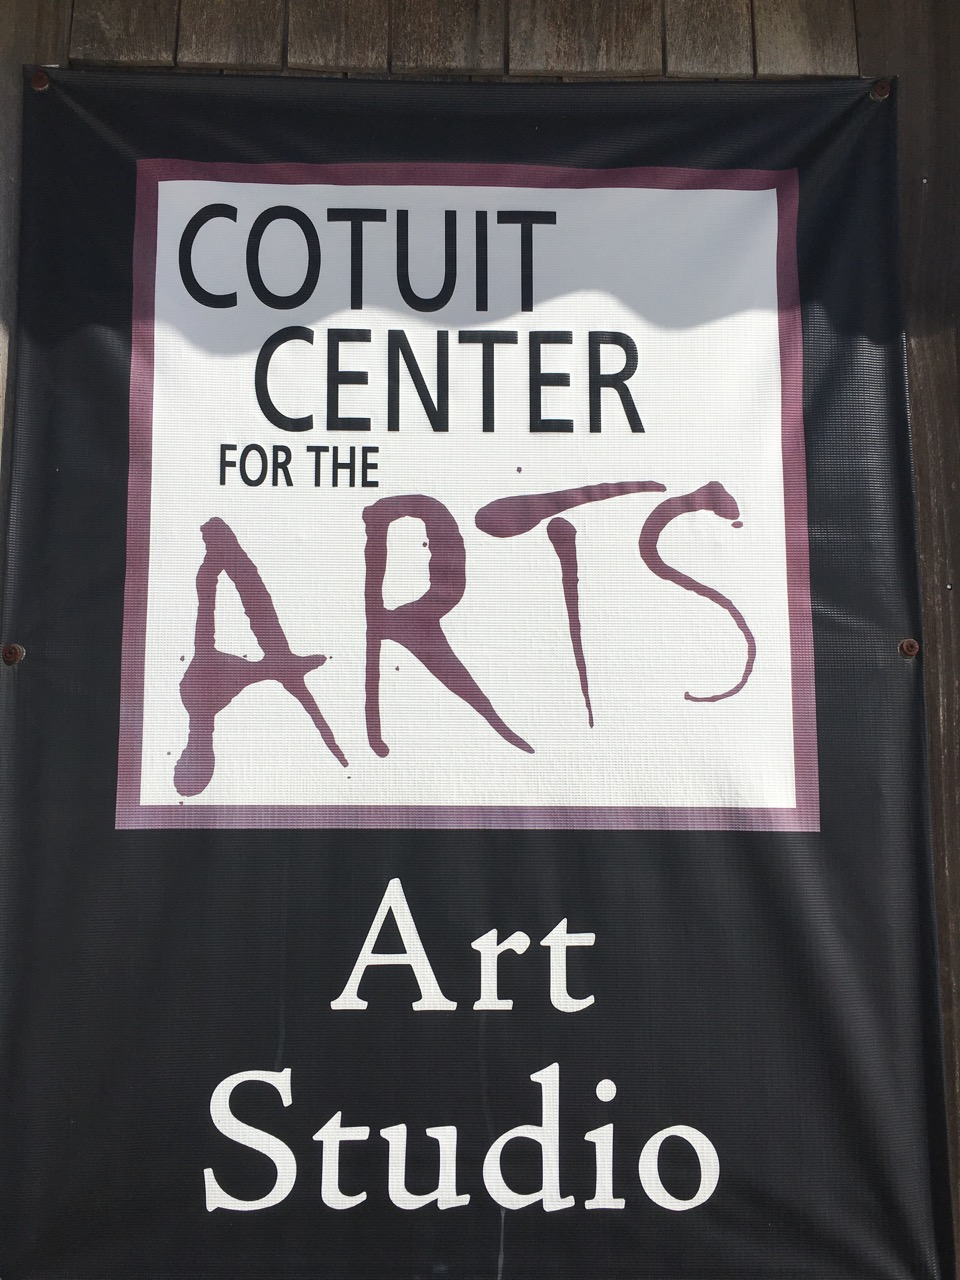 The Cotuit Center for the Arts, part of the Cape Cod Museum Trail.